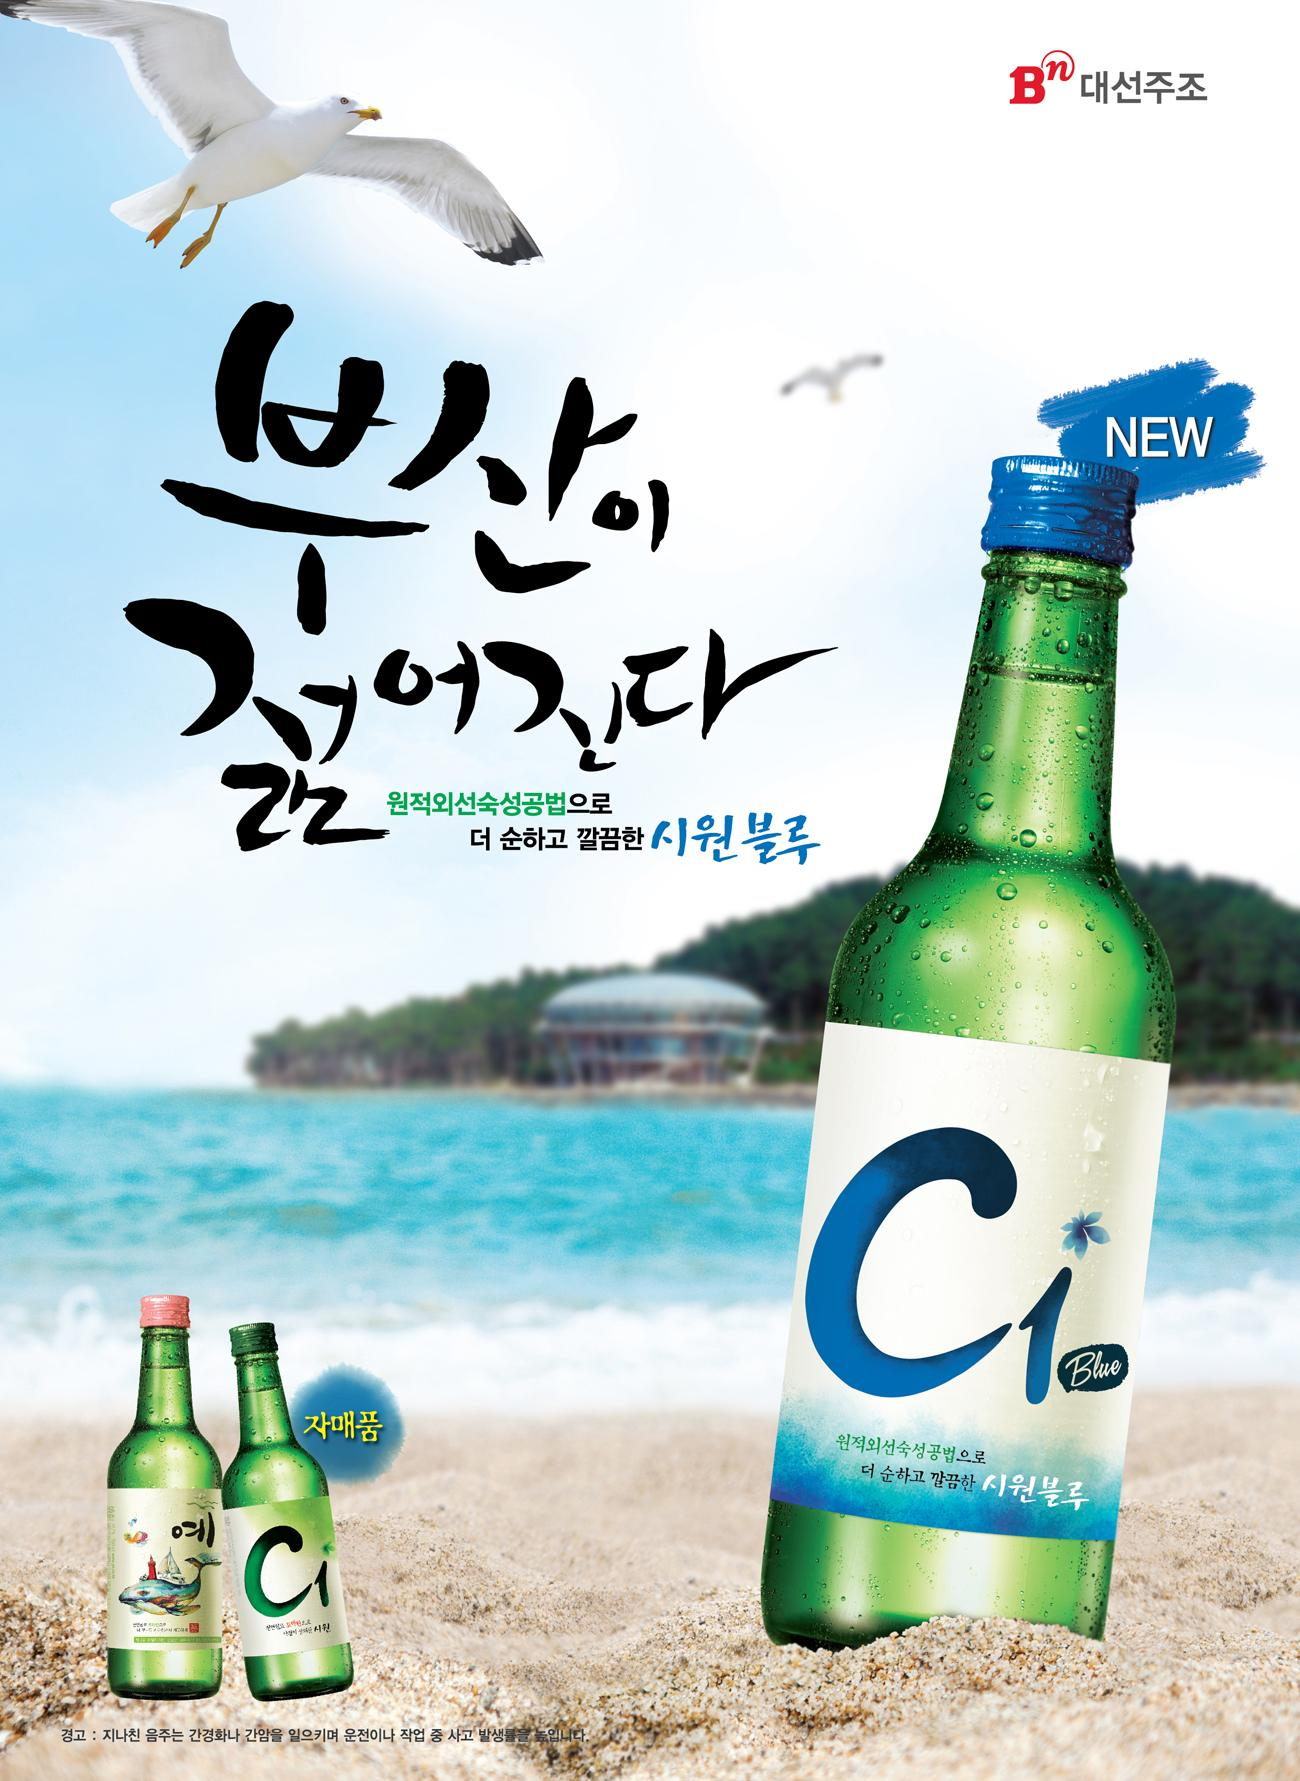 Soju Brands in Korea - C1's poster